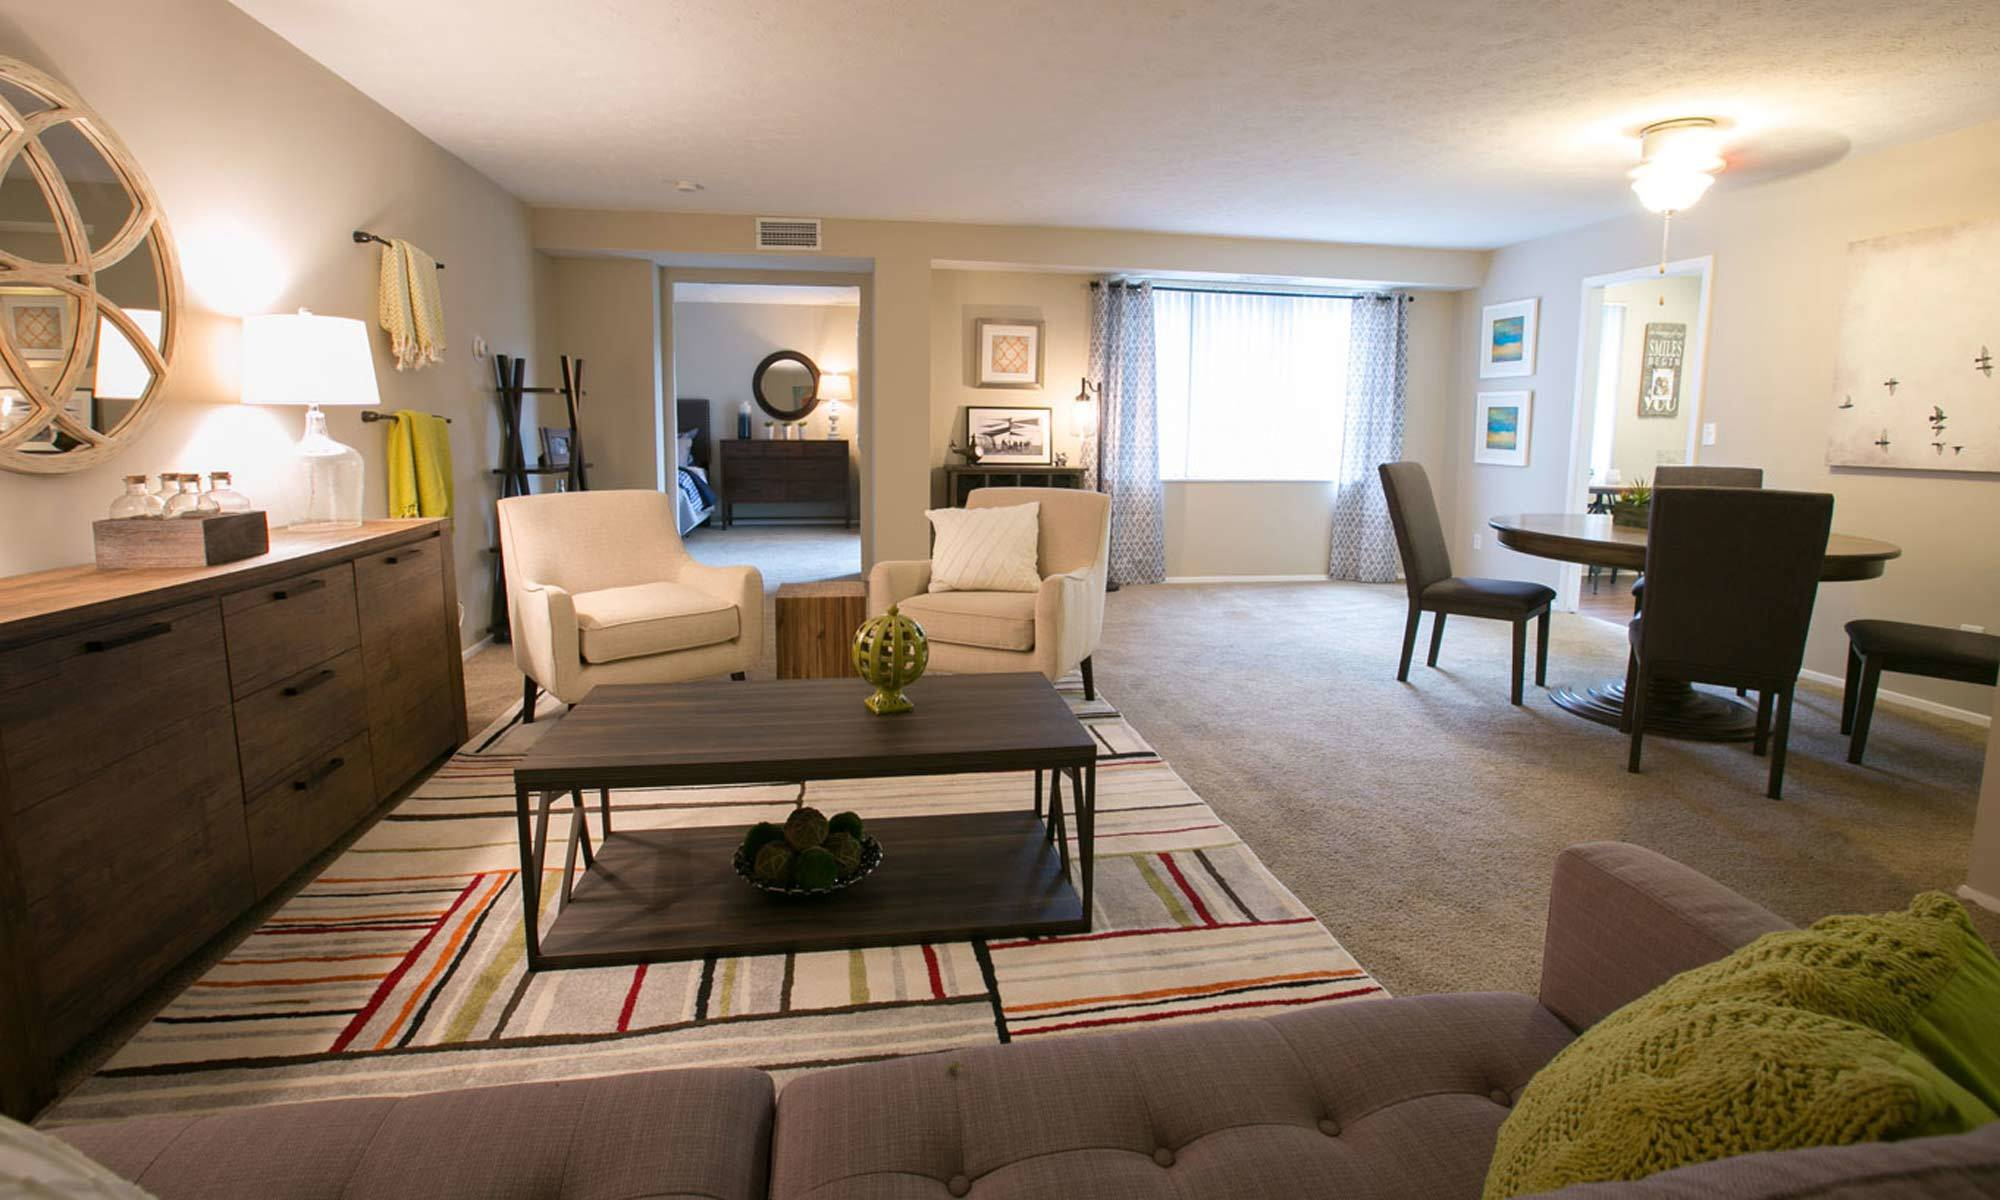 beachwood, oh apartments for rent | deville apartments